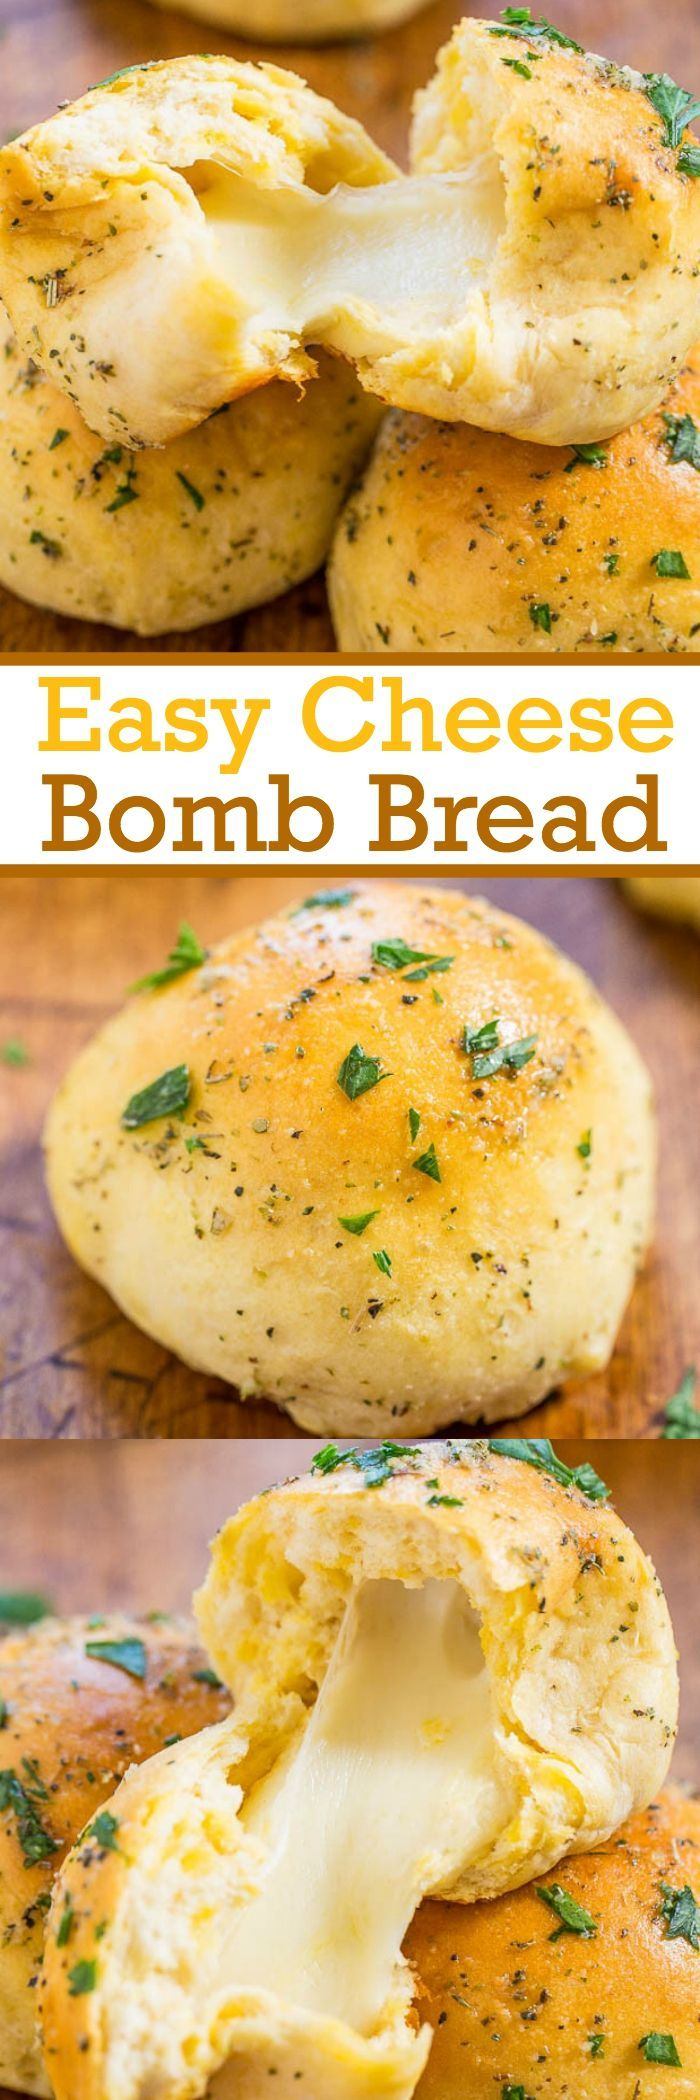 Cheese Bomb Bread Easy Cheese Bomb Bread -  Soft, buttery bread brushed with garlic butter and stuffed with CHEESE! So good, mindlessly easy, goofproof, and ready in 10 minutes! A hit with everyone!!Easy Cheese Bomb Bread -  Soft, buttery bread brushed with garlic butter and stuffed with CHEESE! So good, mindlessly easy, goofproof, and ready in 10 minutes! A hit...